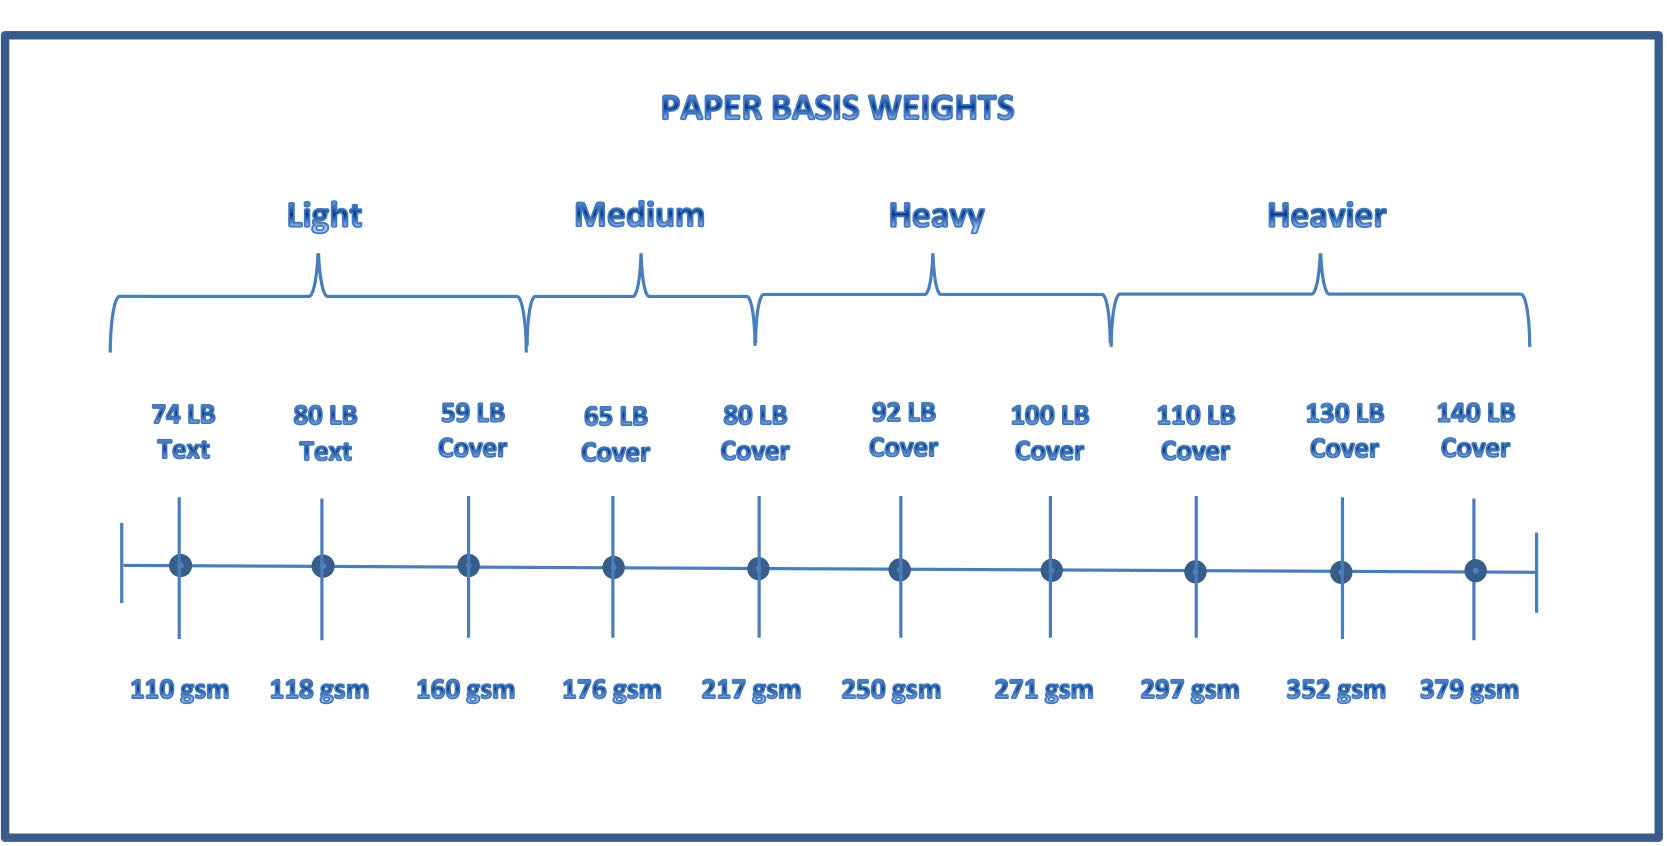 Paper 101 paper weight guide about paper weights and paper terms